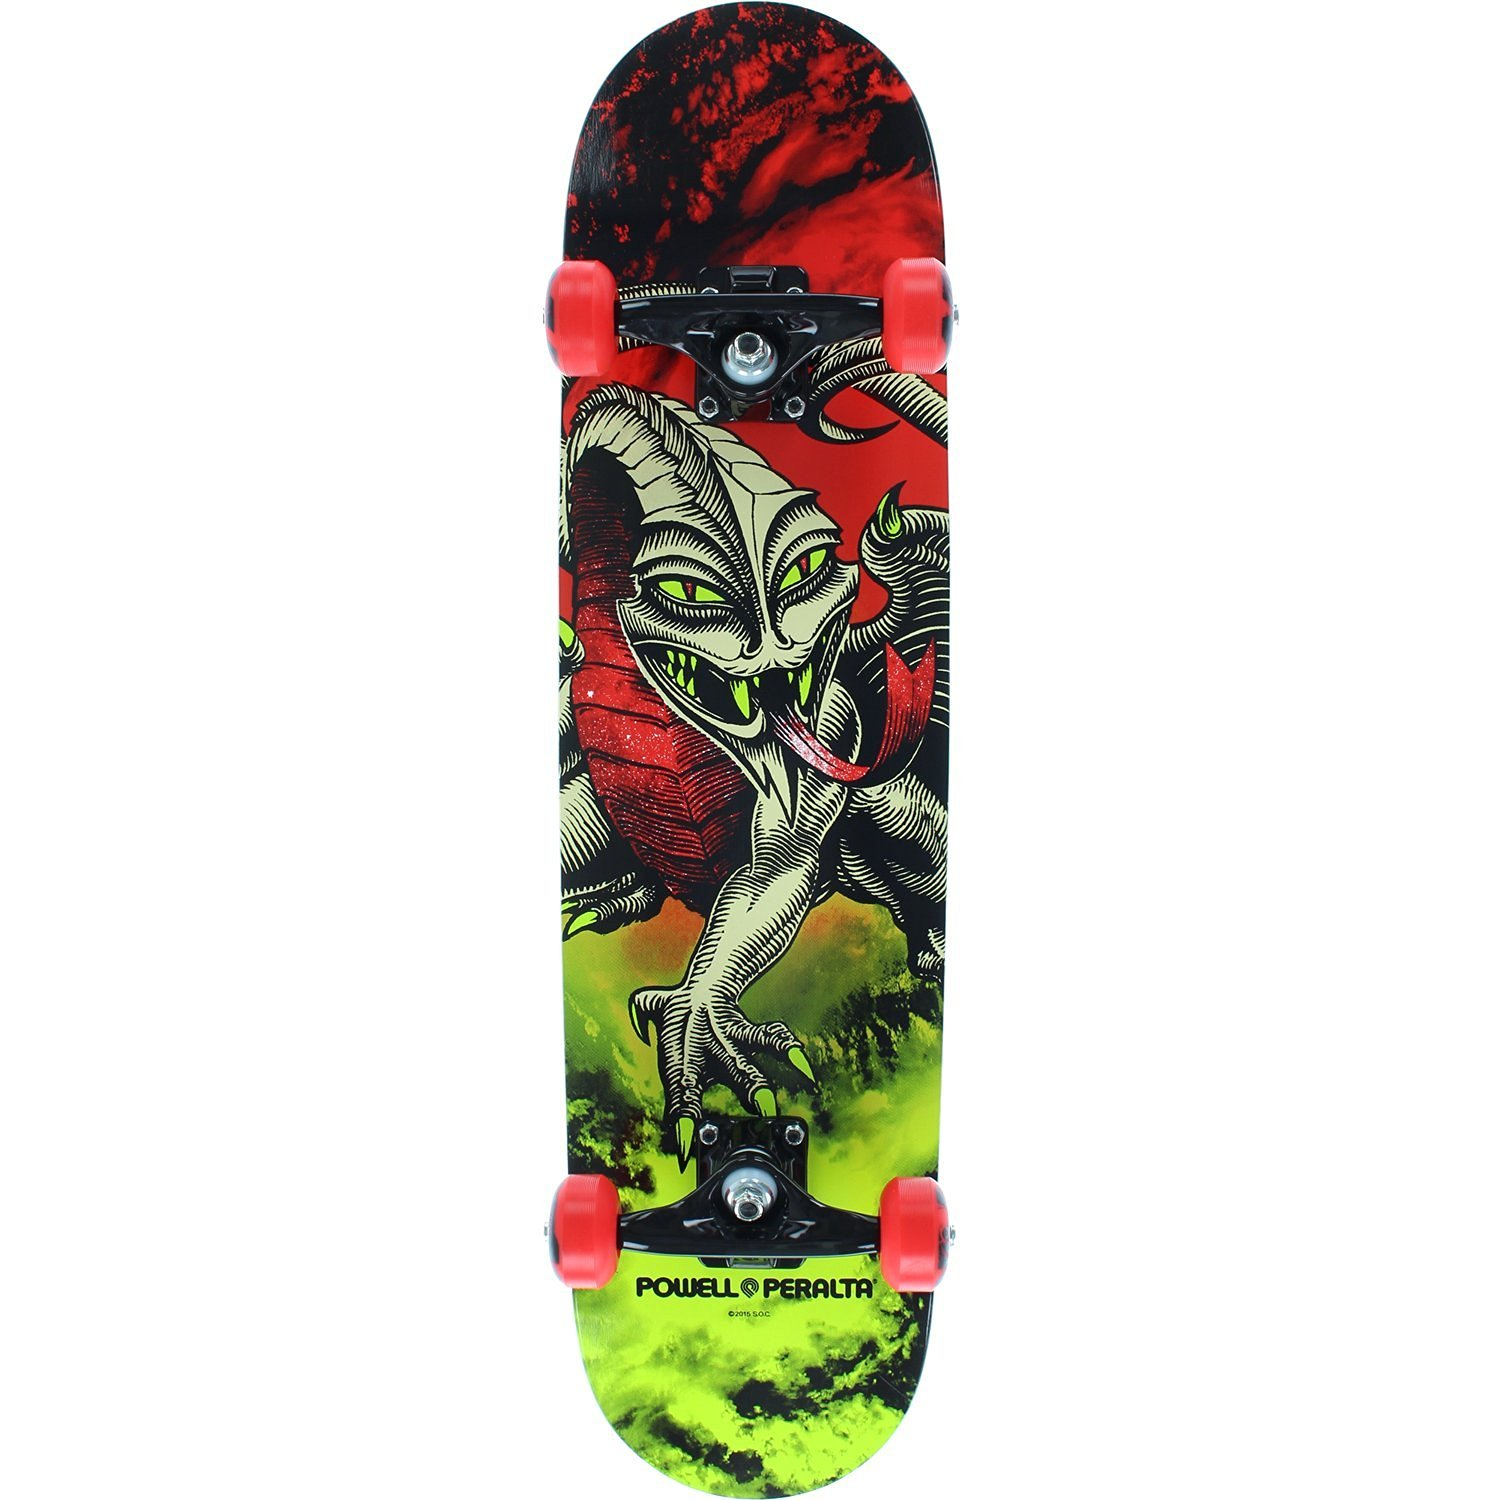 Powell Peralta Cab Dragon Complete Skateboard -7.75 Storm Red/Lime